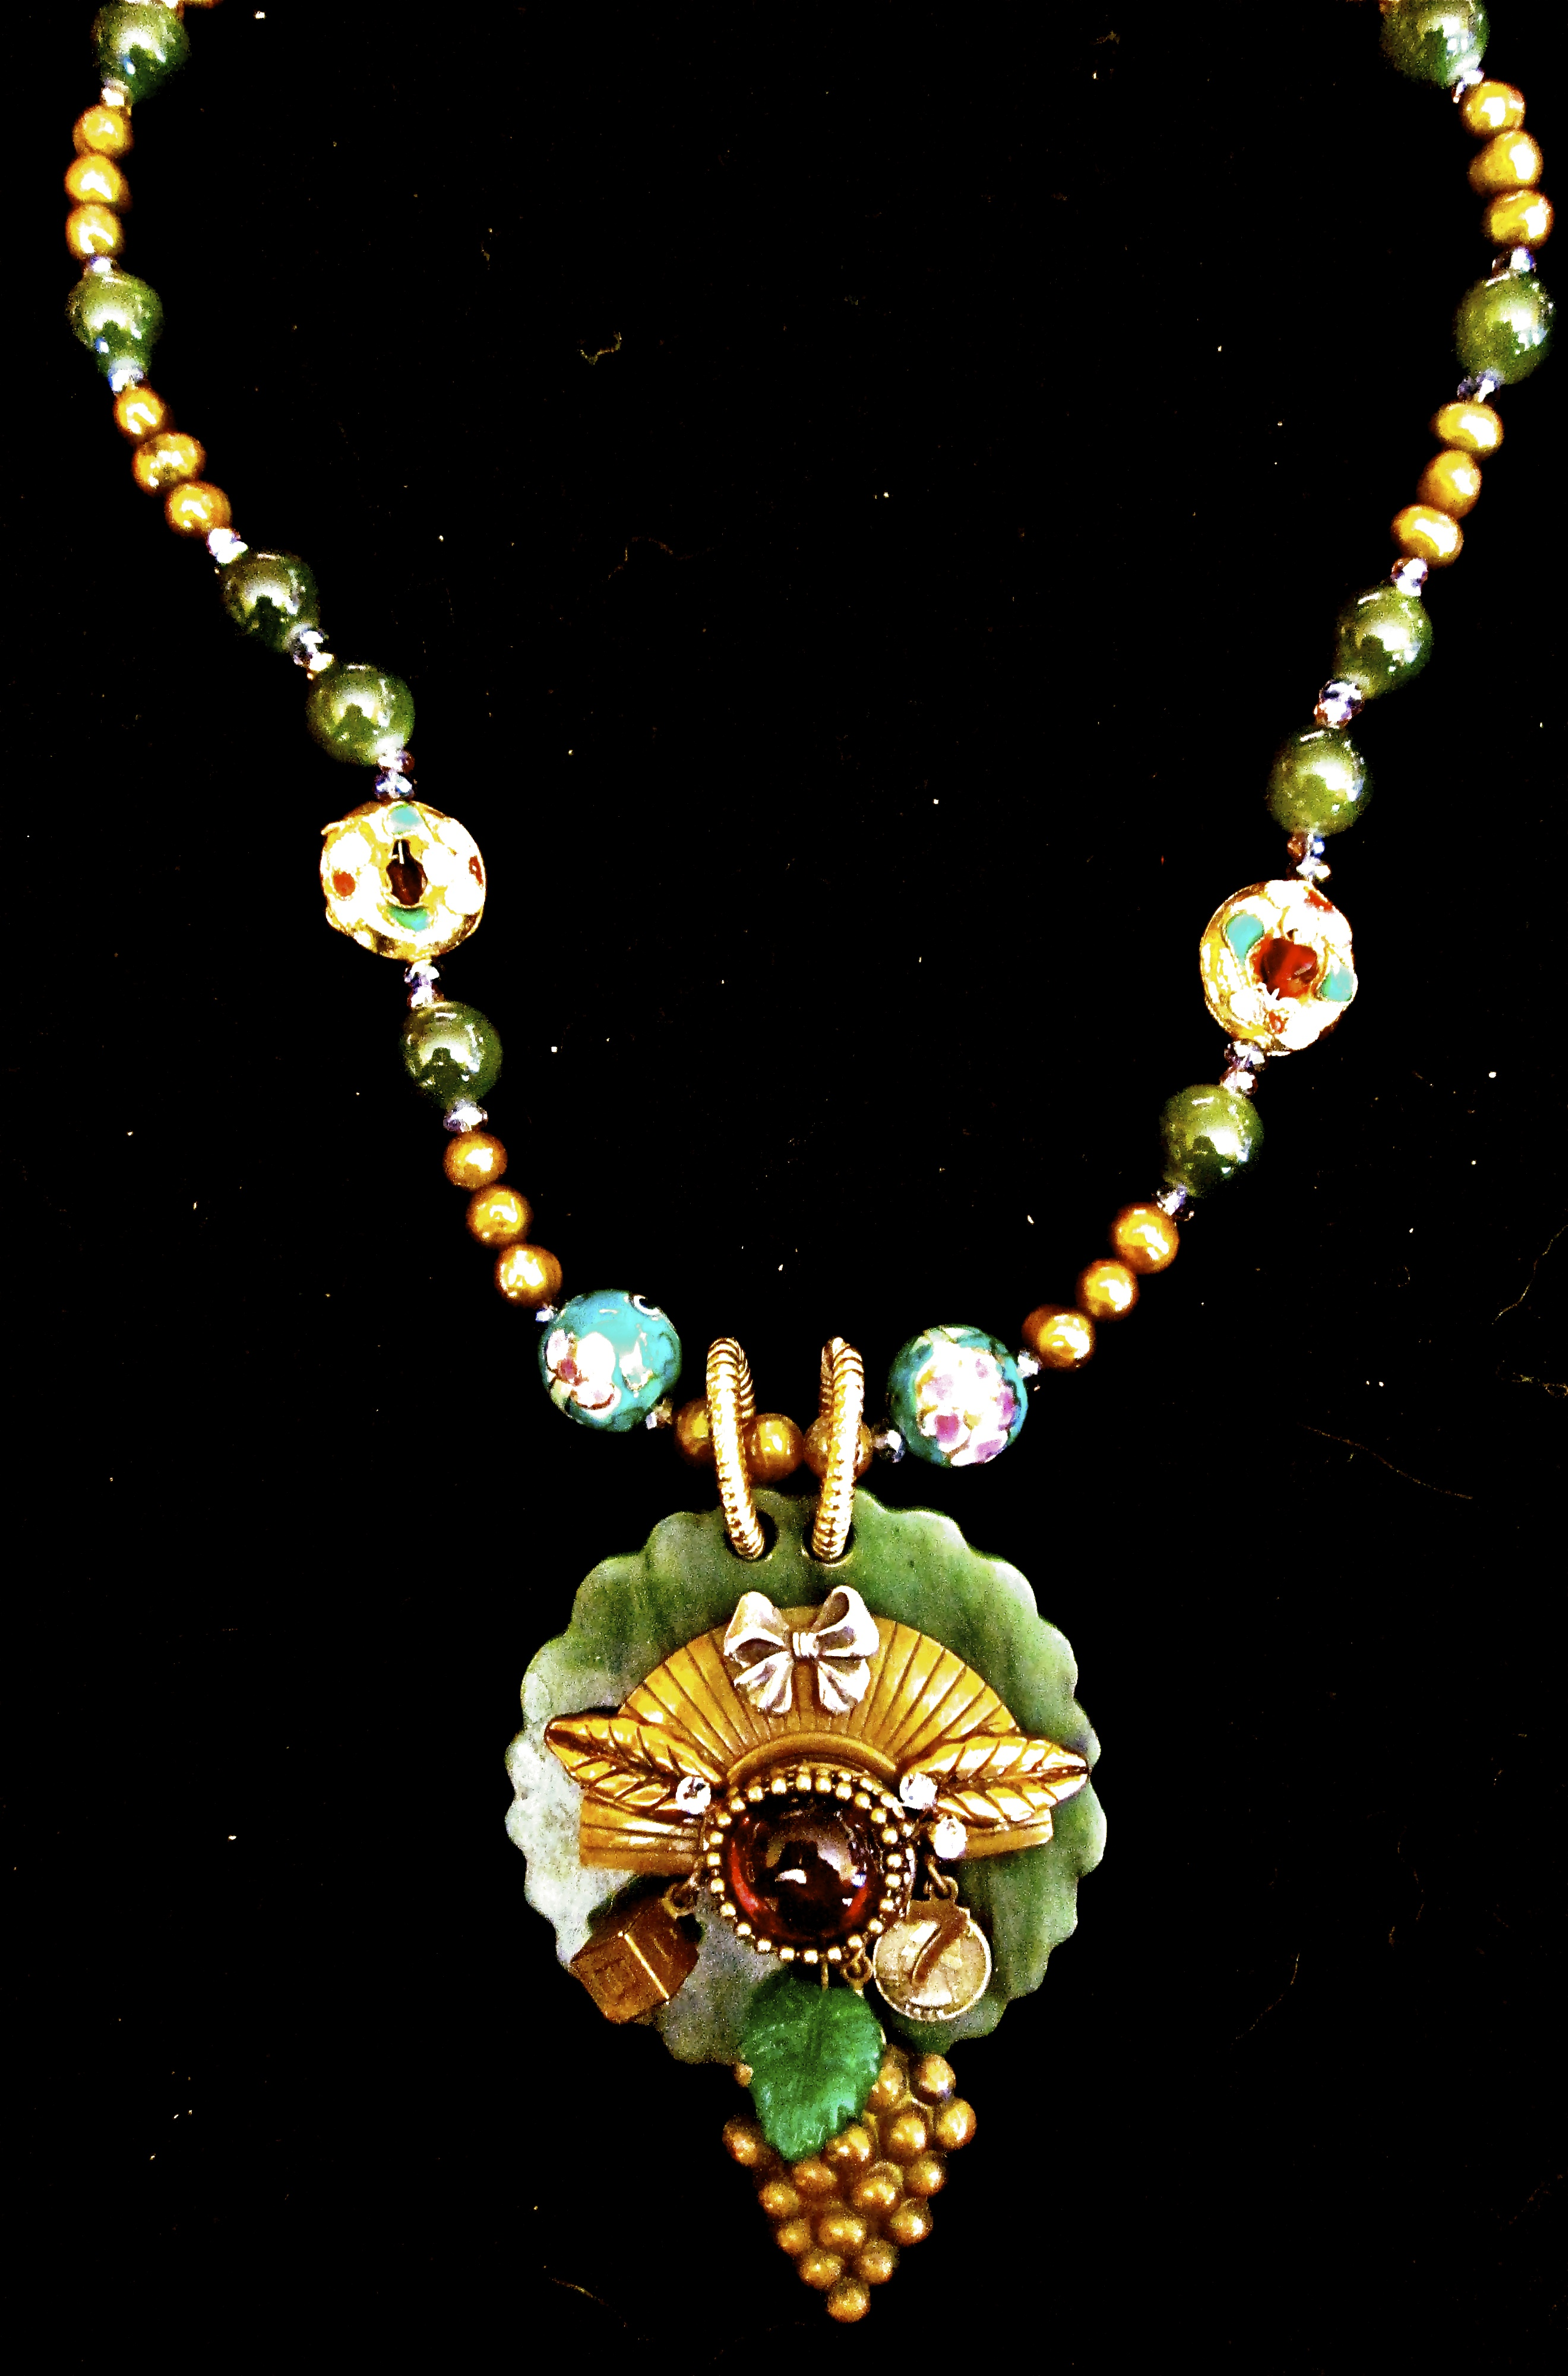 BK's insignia Necklace/assemblage